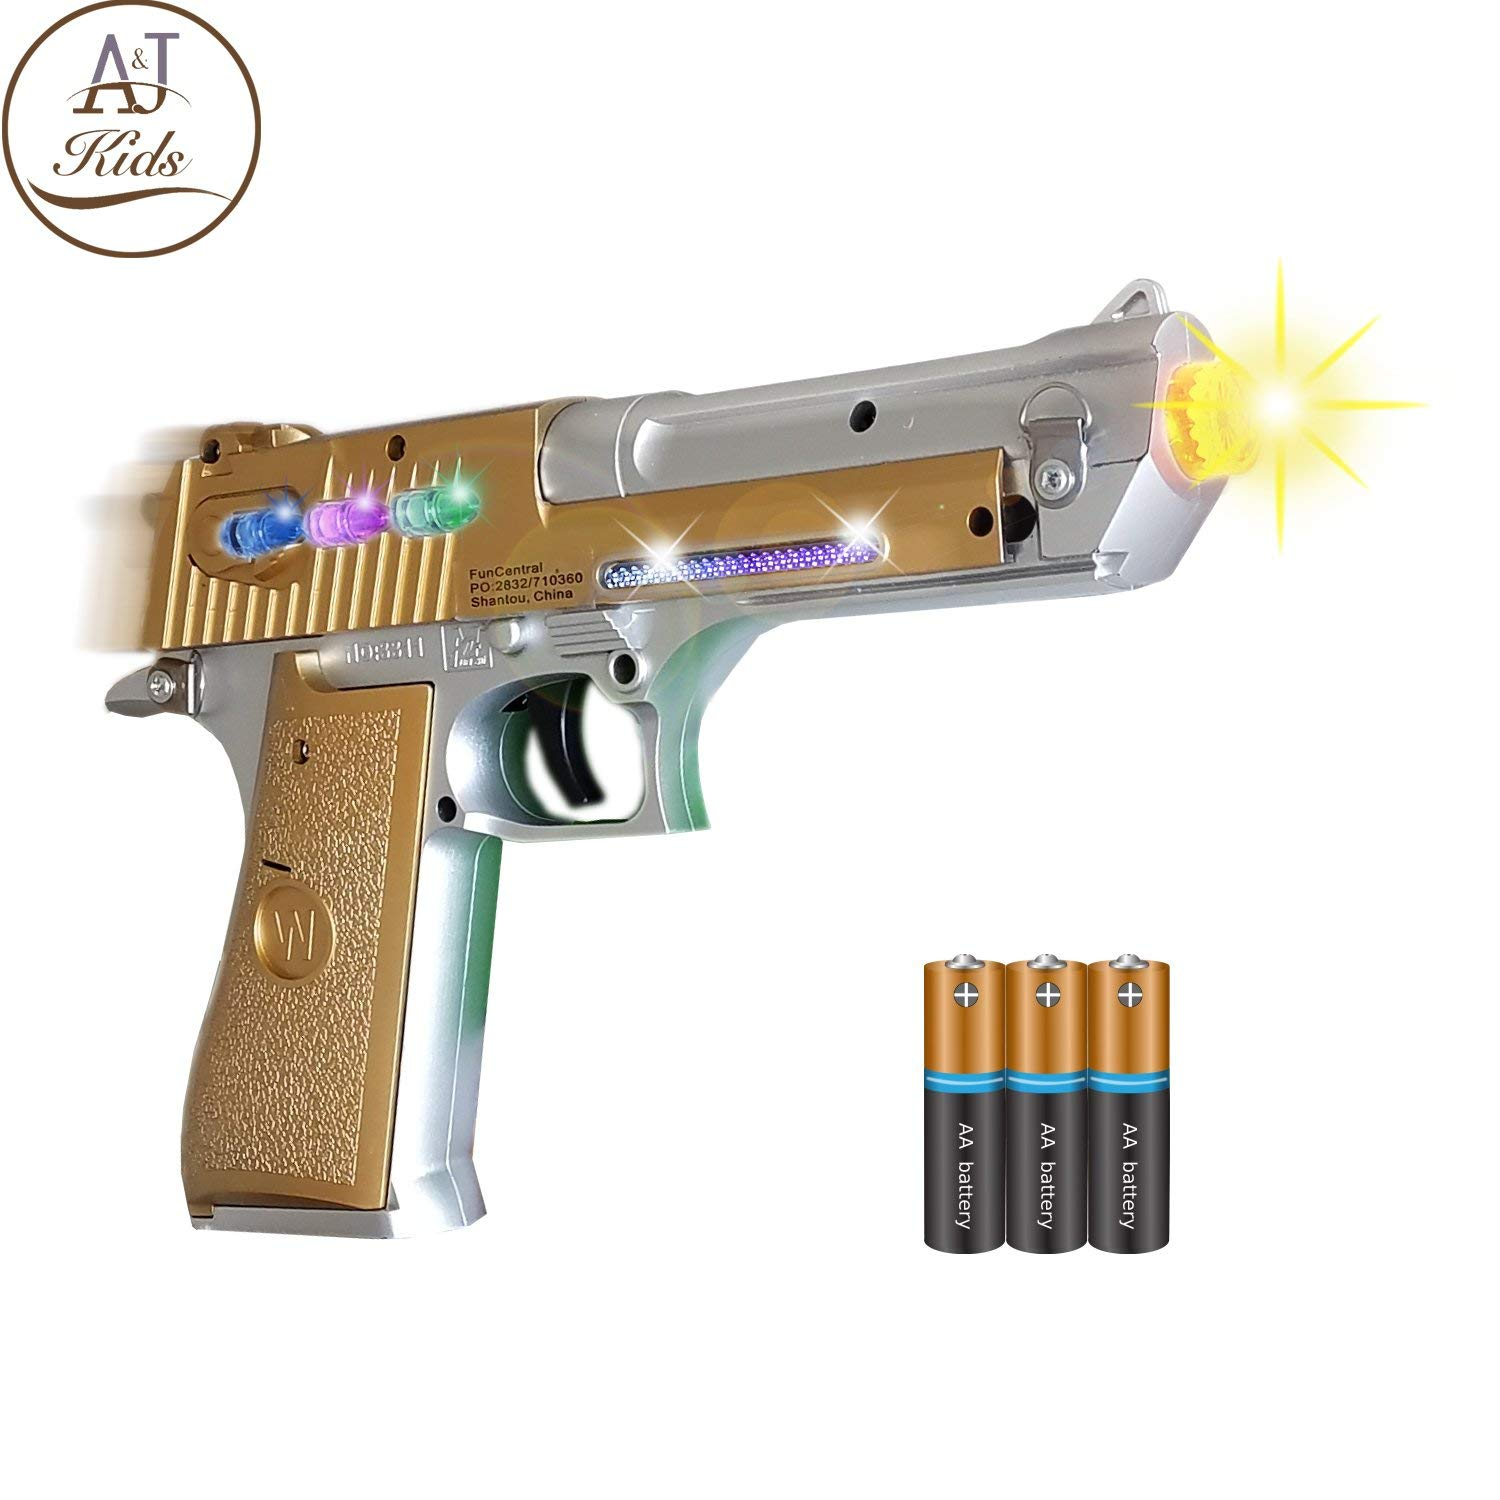 ANJ Kids Toys - Pretend Play Toy Gun for Boys | Toy Pistol Gun with Flashing Lights and Sound | Detailed Craft with Rapid Firing and Vibrating (Age 3+, Batteries Included)